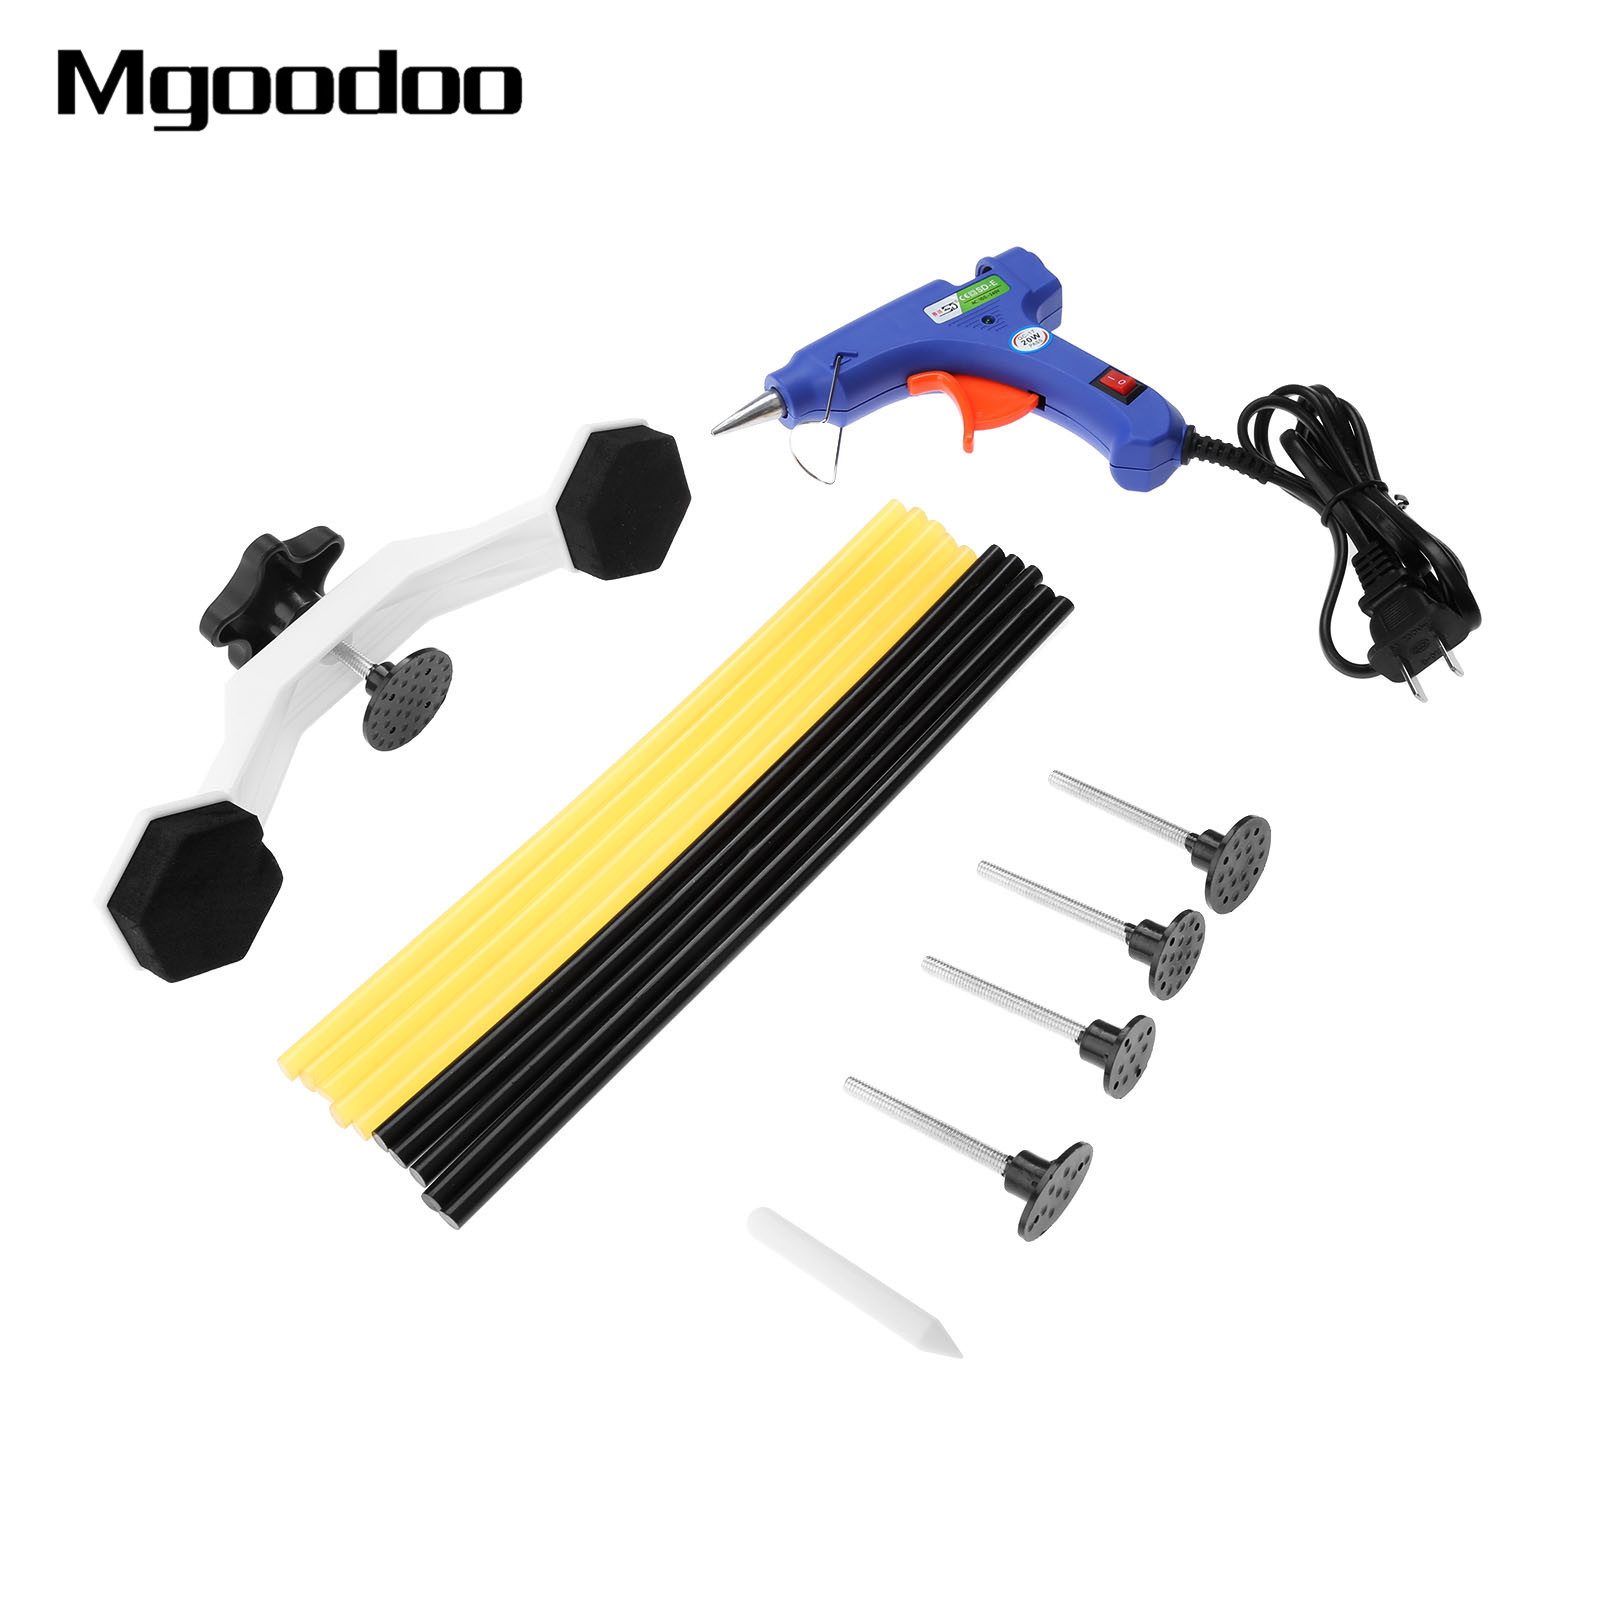 PDR Tools Pops a Dent Repair Bridge Dent Puller Kit with Hot Melt Glue Gun Pro PDR Glue Sticks for Auto Car Body Dent Repair